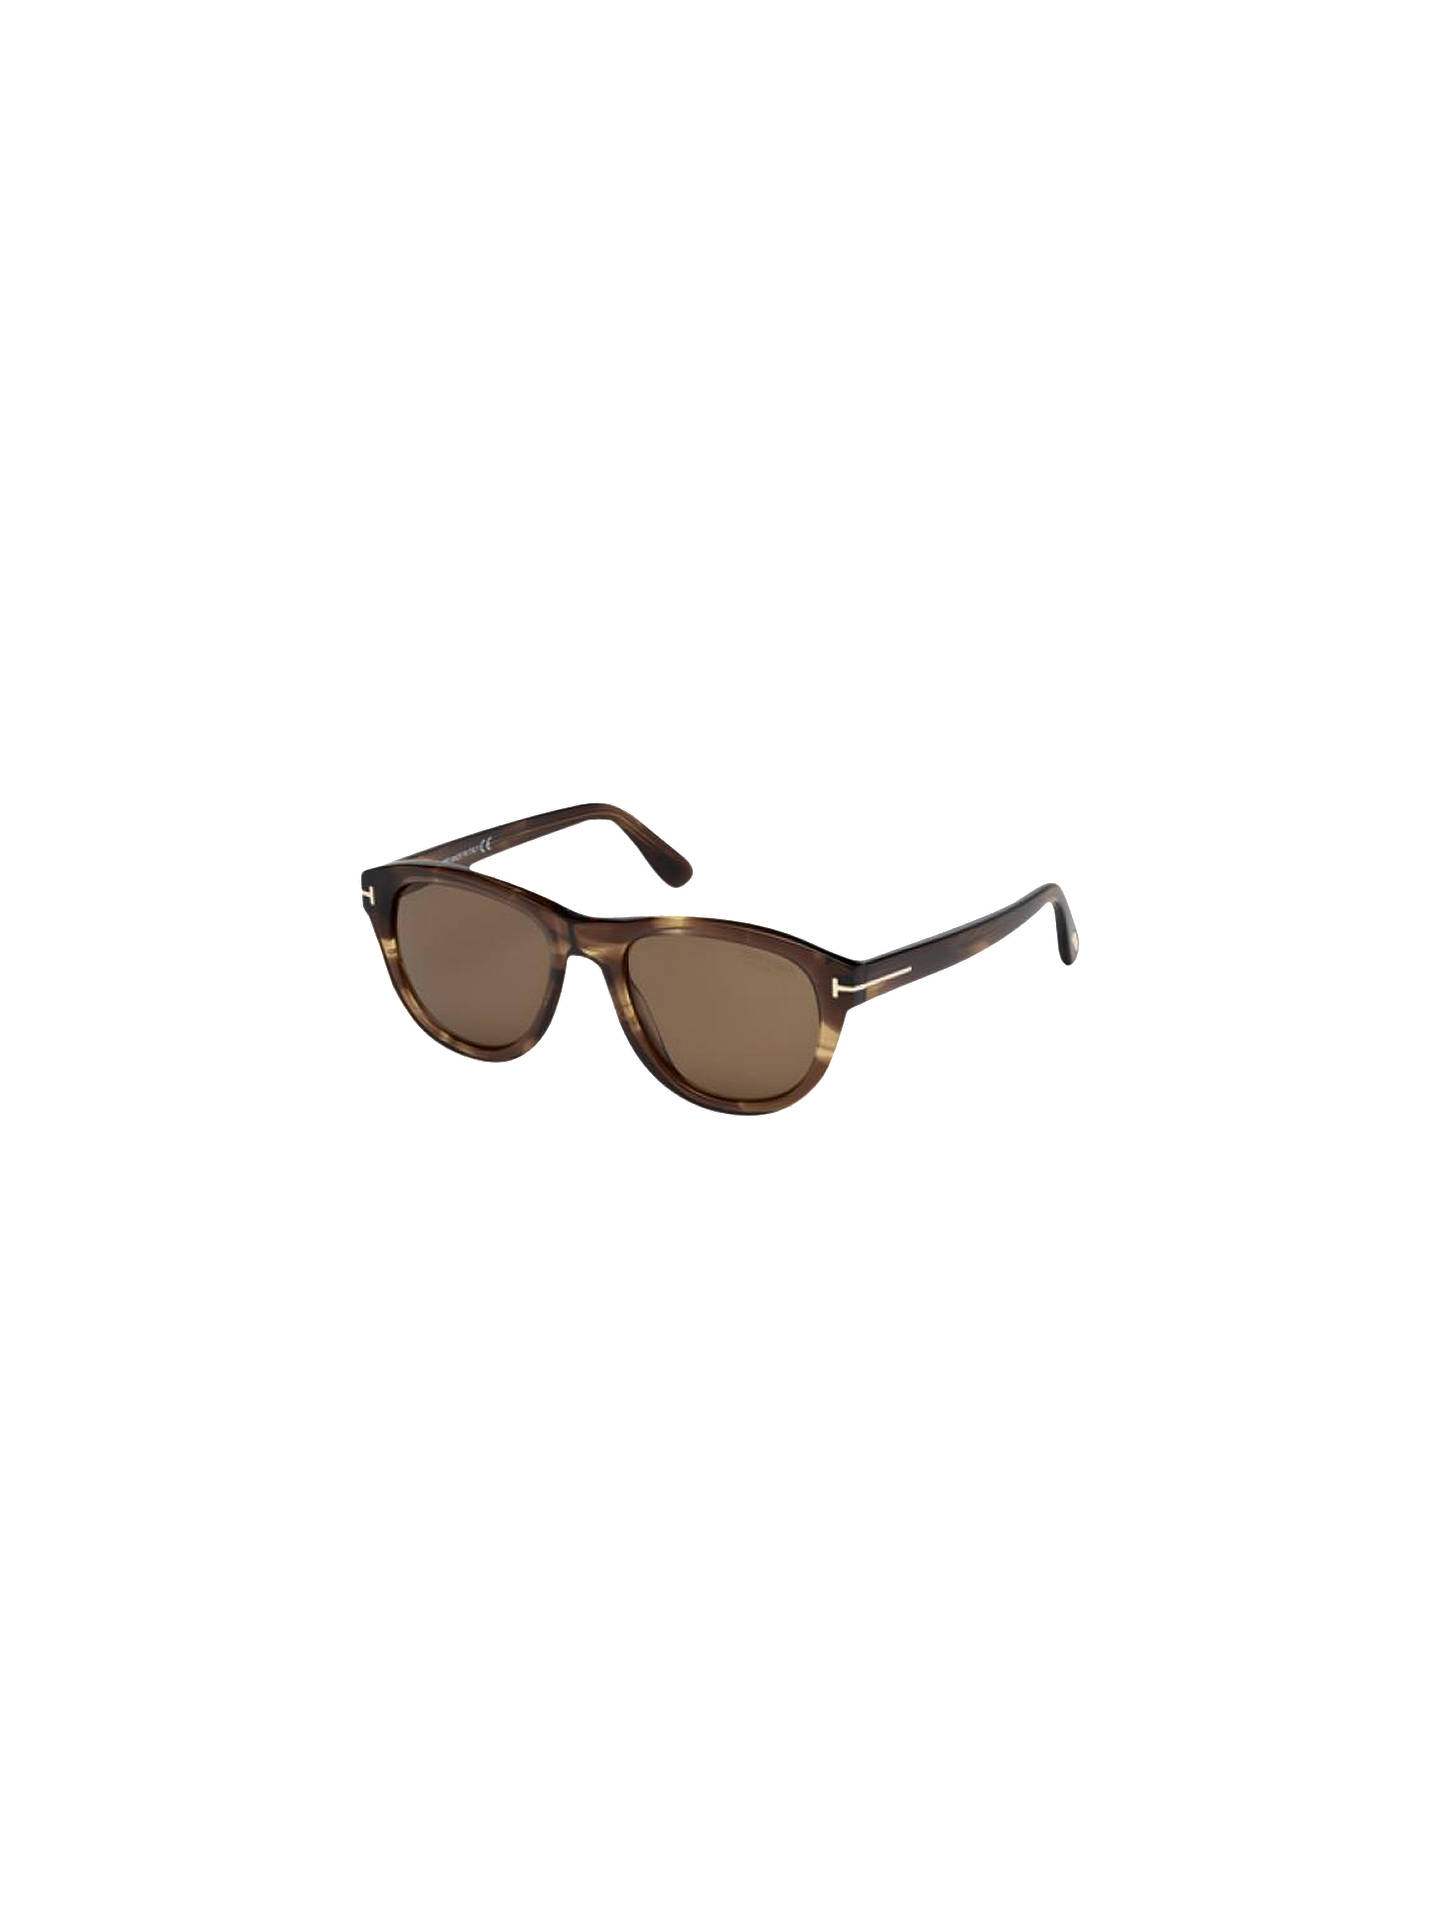 BuyTOM FORD FT0520 Benedict Sunglasses, Brown Online at johnlewis.com